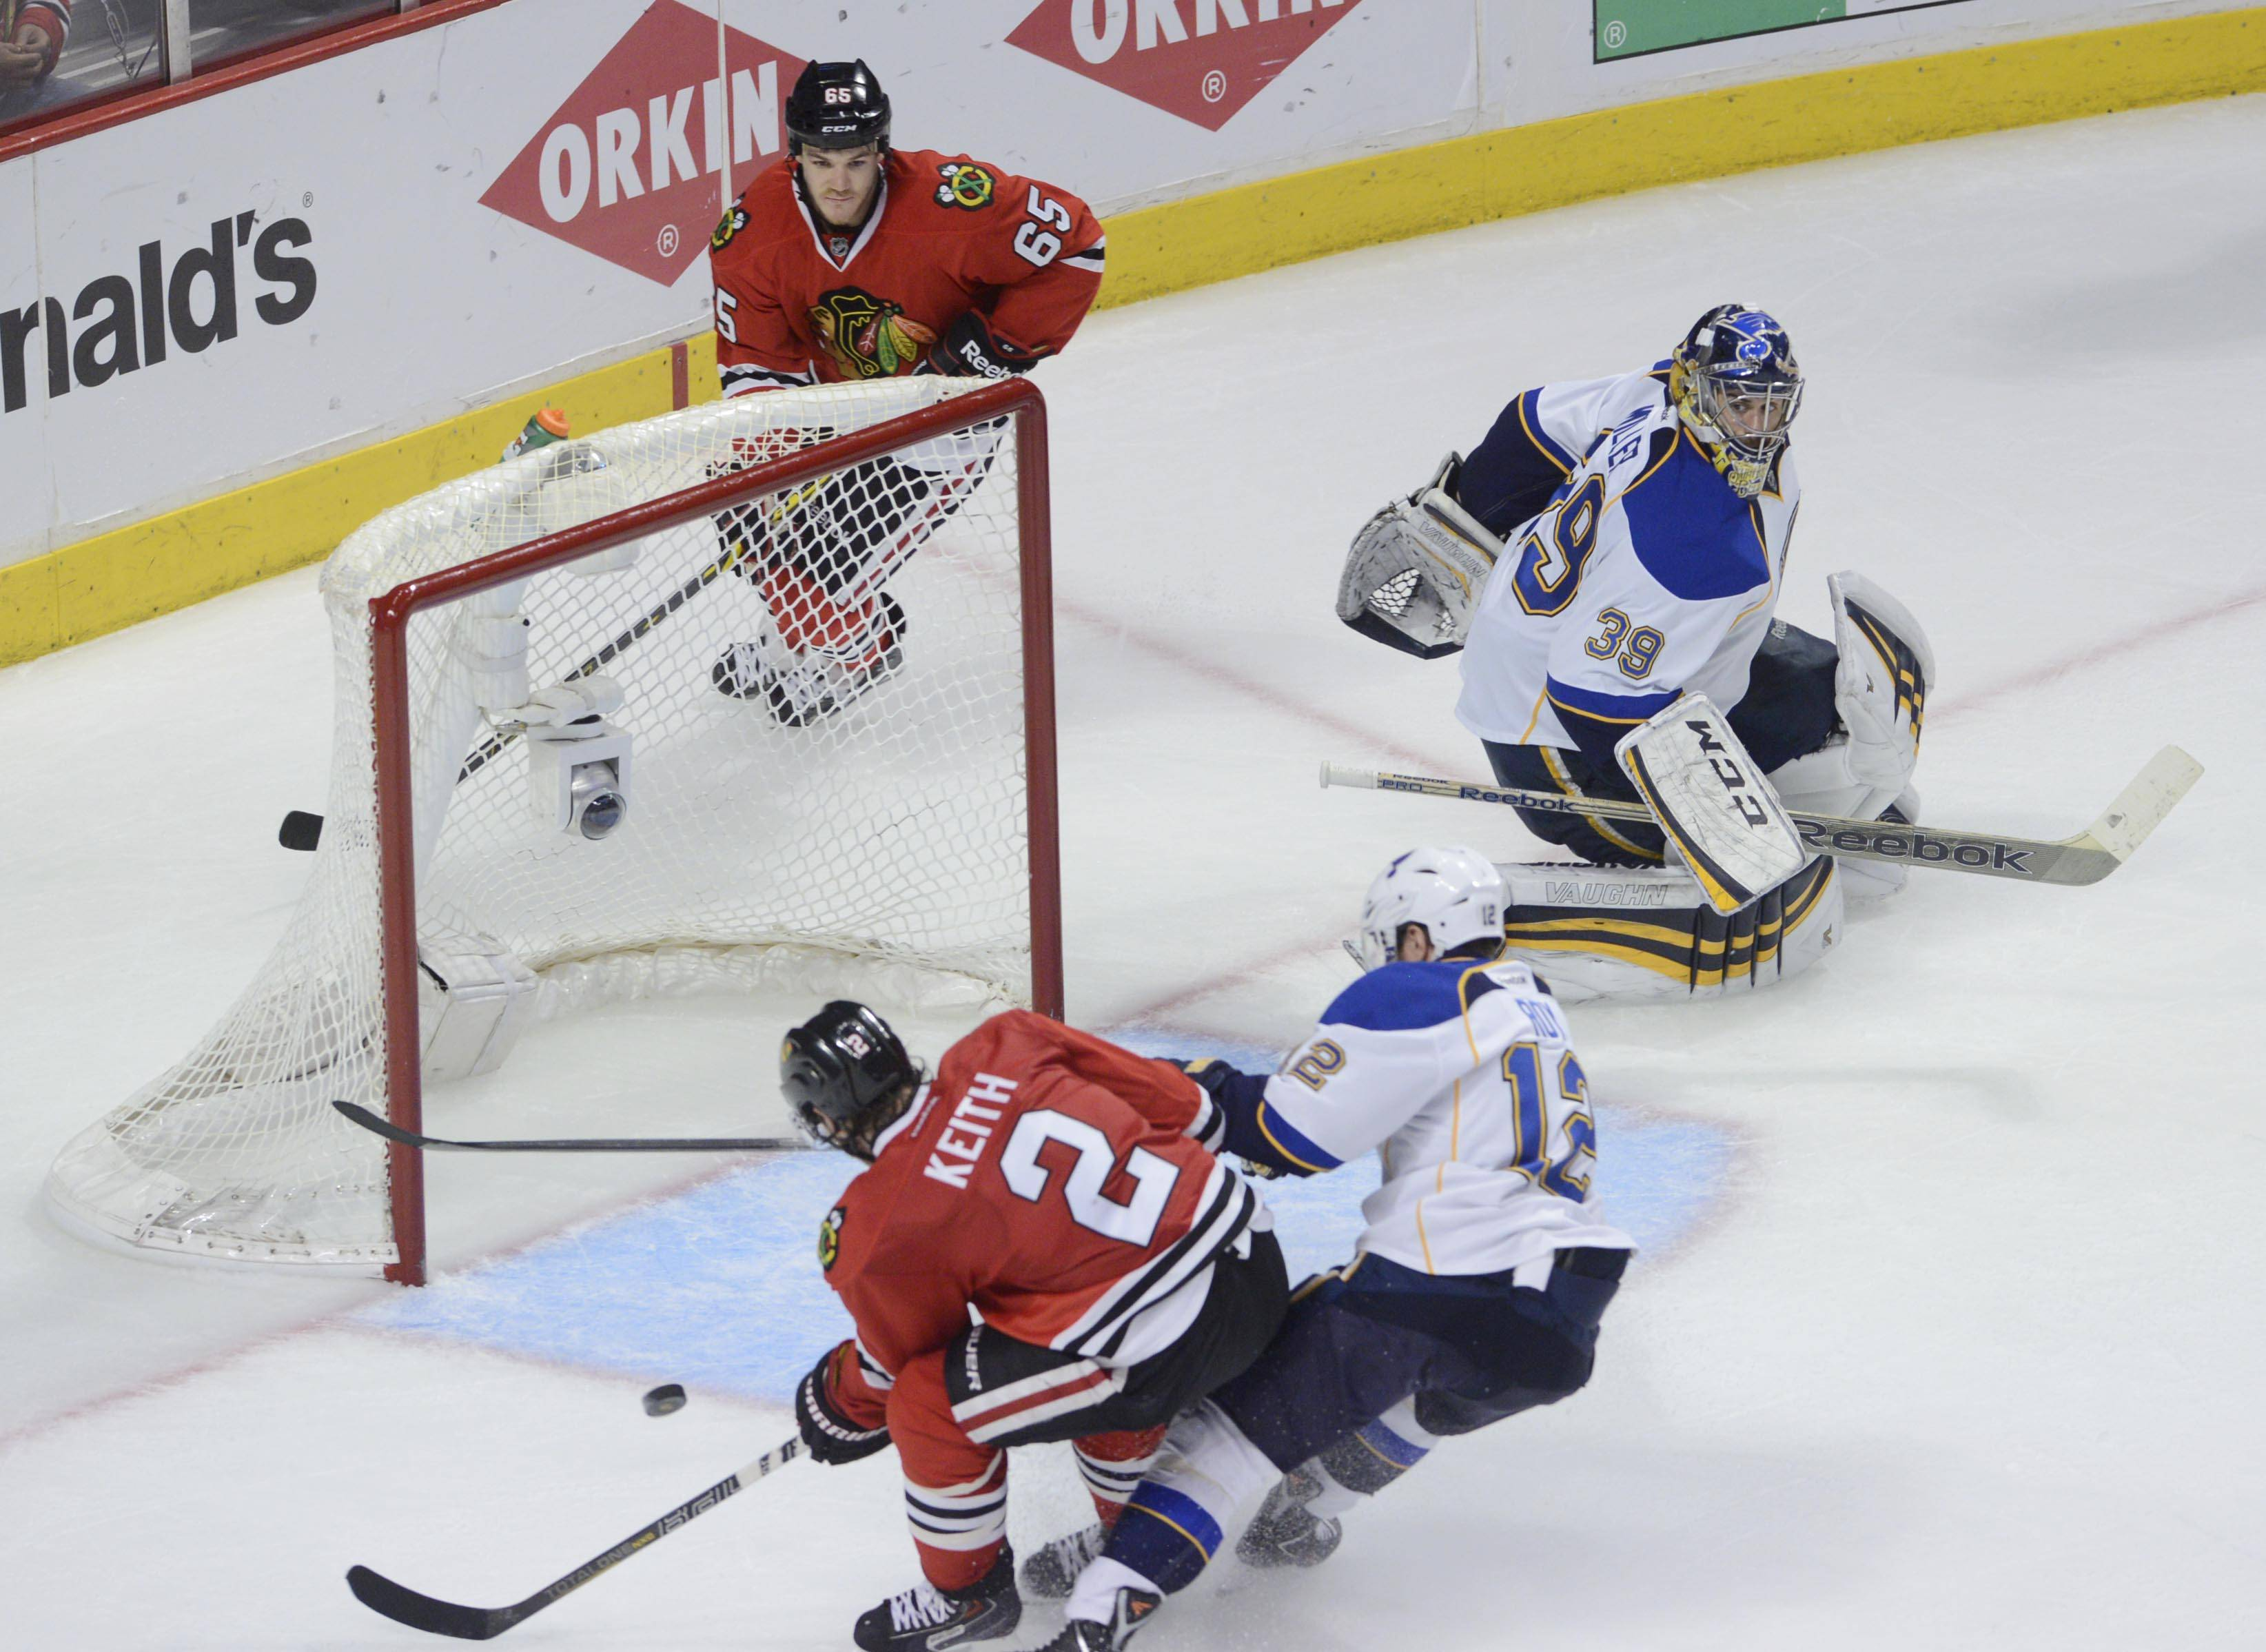 Chicago Blackhawks defenseman Duncan Keith shoots to score after a pass from teammate Andrew Shaw, bend the net, in the third period to make the final score 5-1 against the St. Louis Blues.